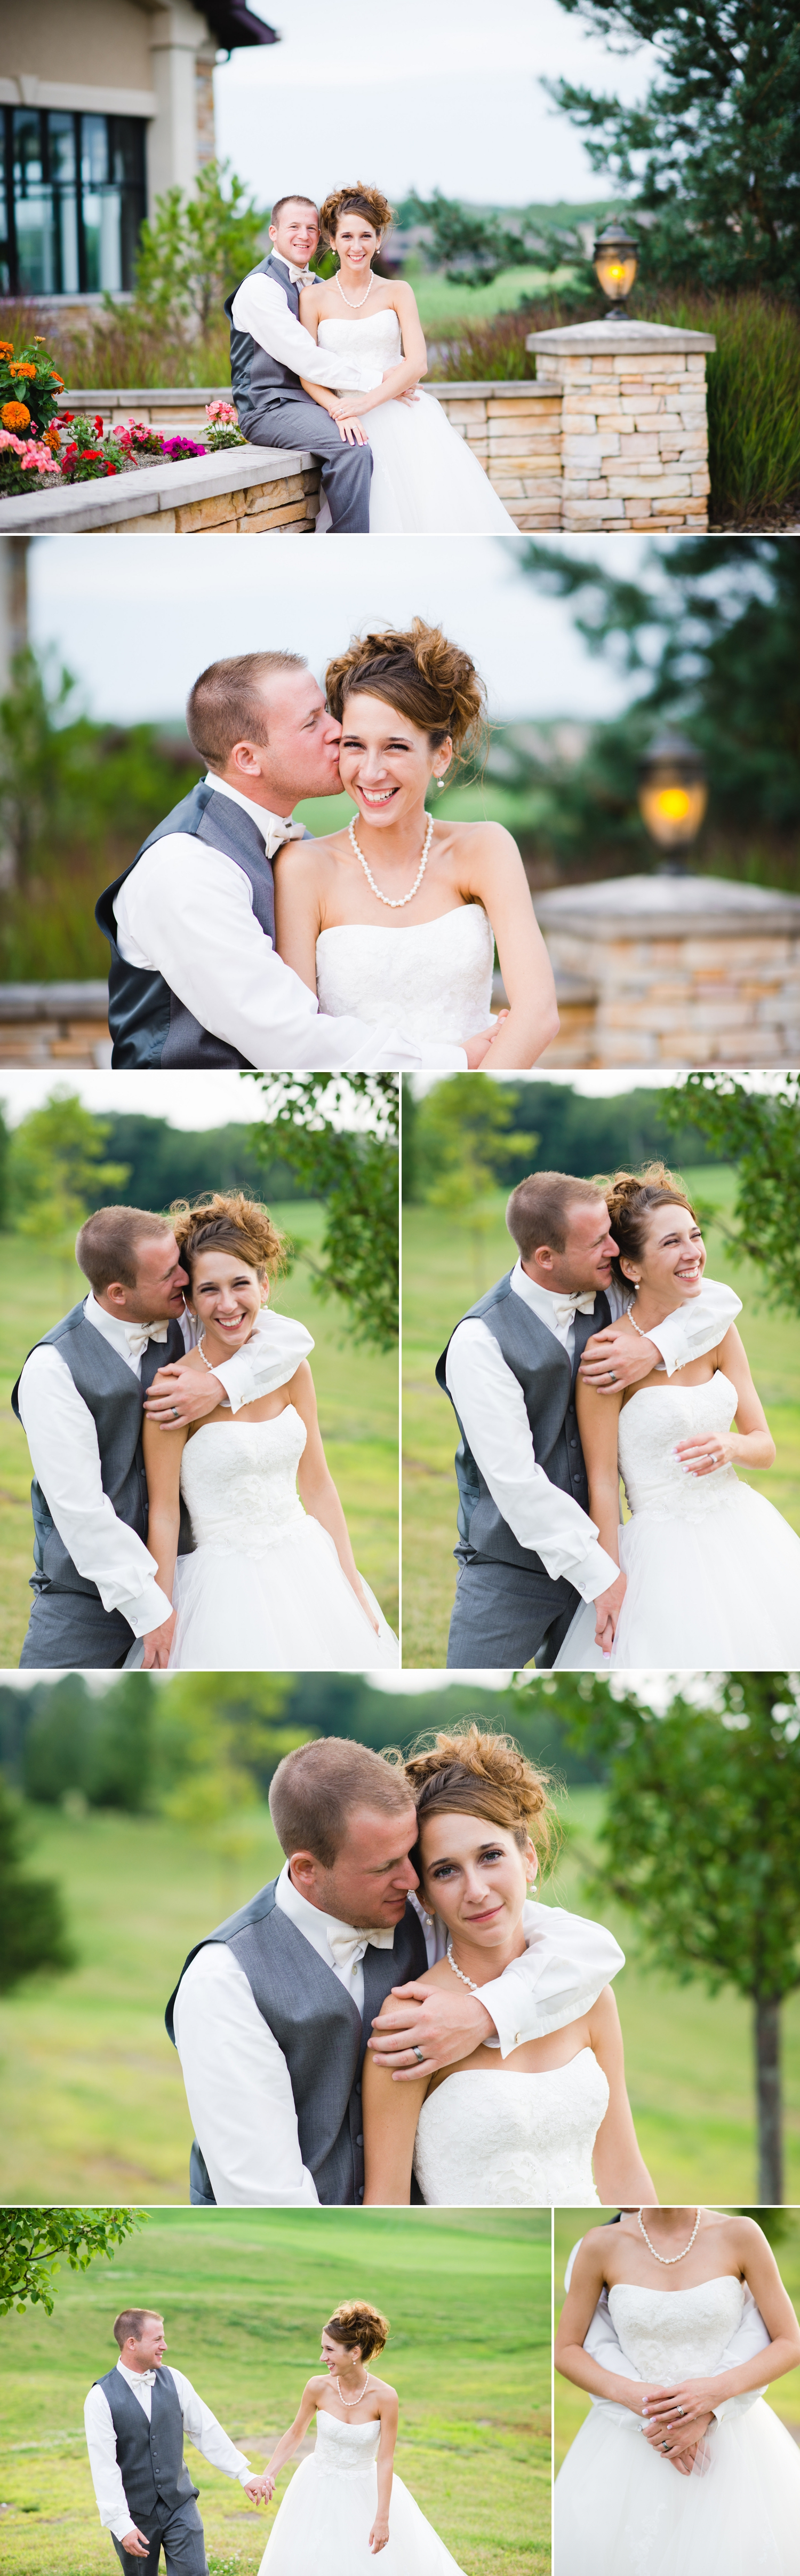 Ashleigh Saylor Photography Canton Ohio Wedding 7.jpg